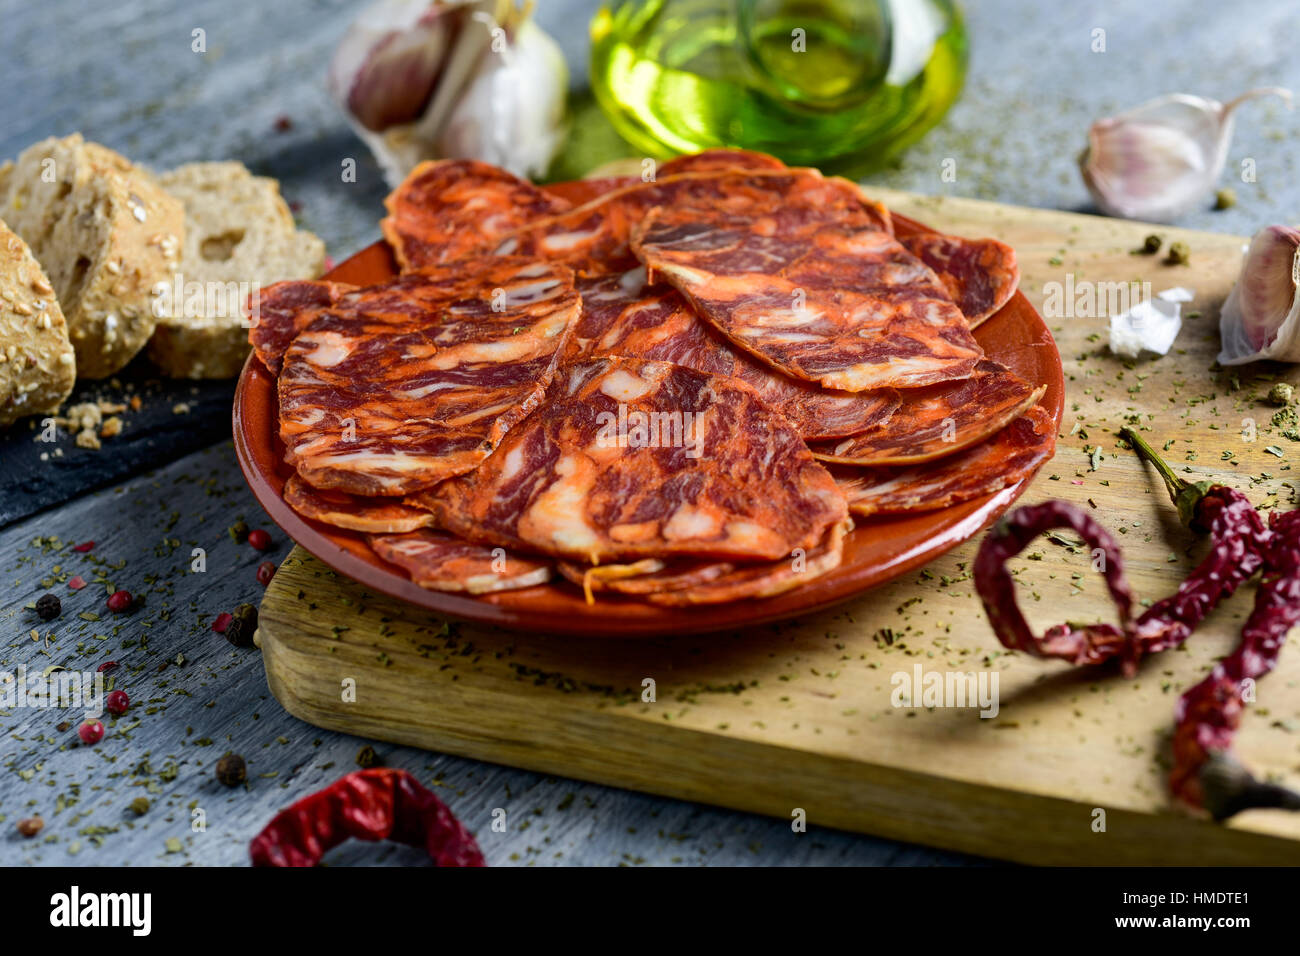 closeup of an earthenware plate with some slices of spanish chorizo, cured pork sausage, some slices of bread, a - Stock Image